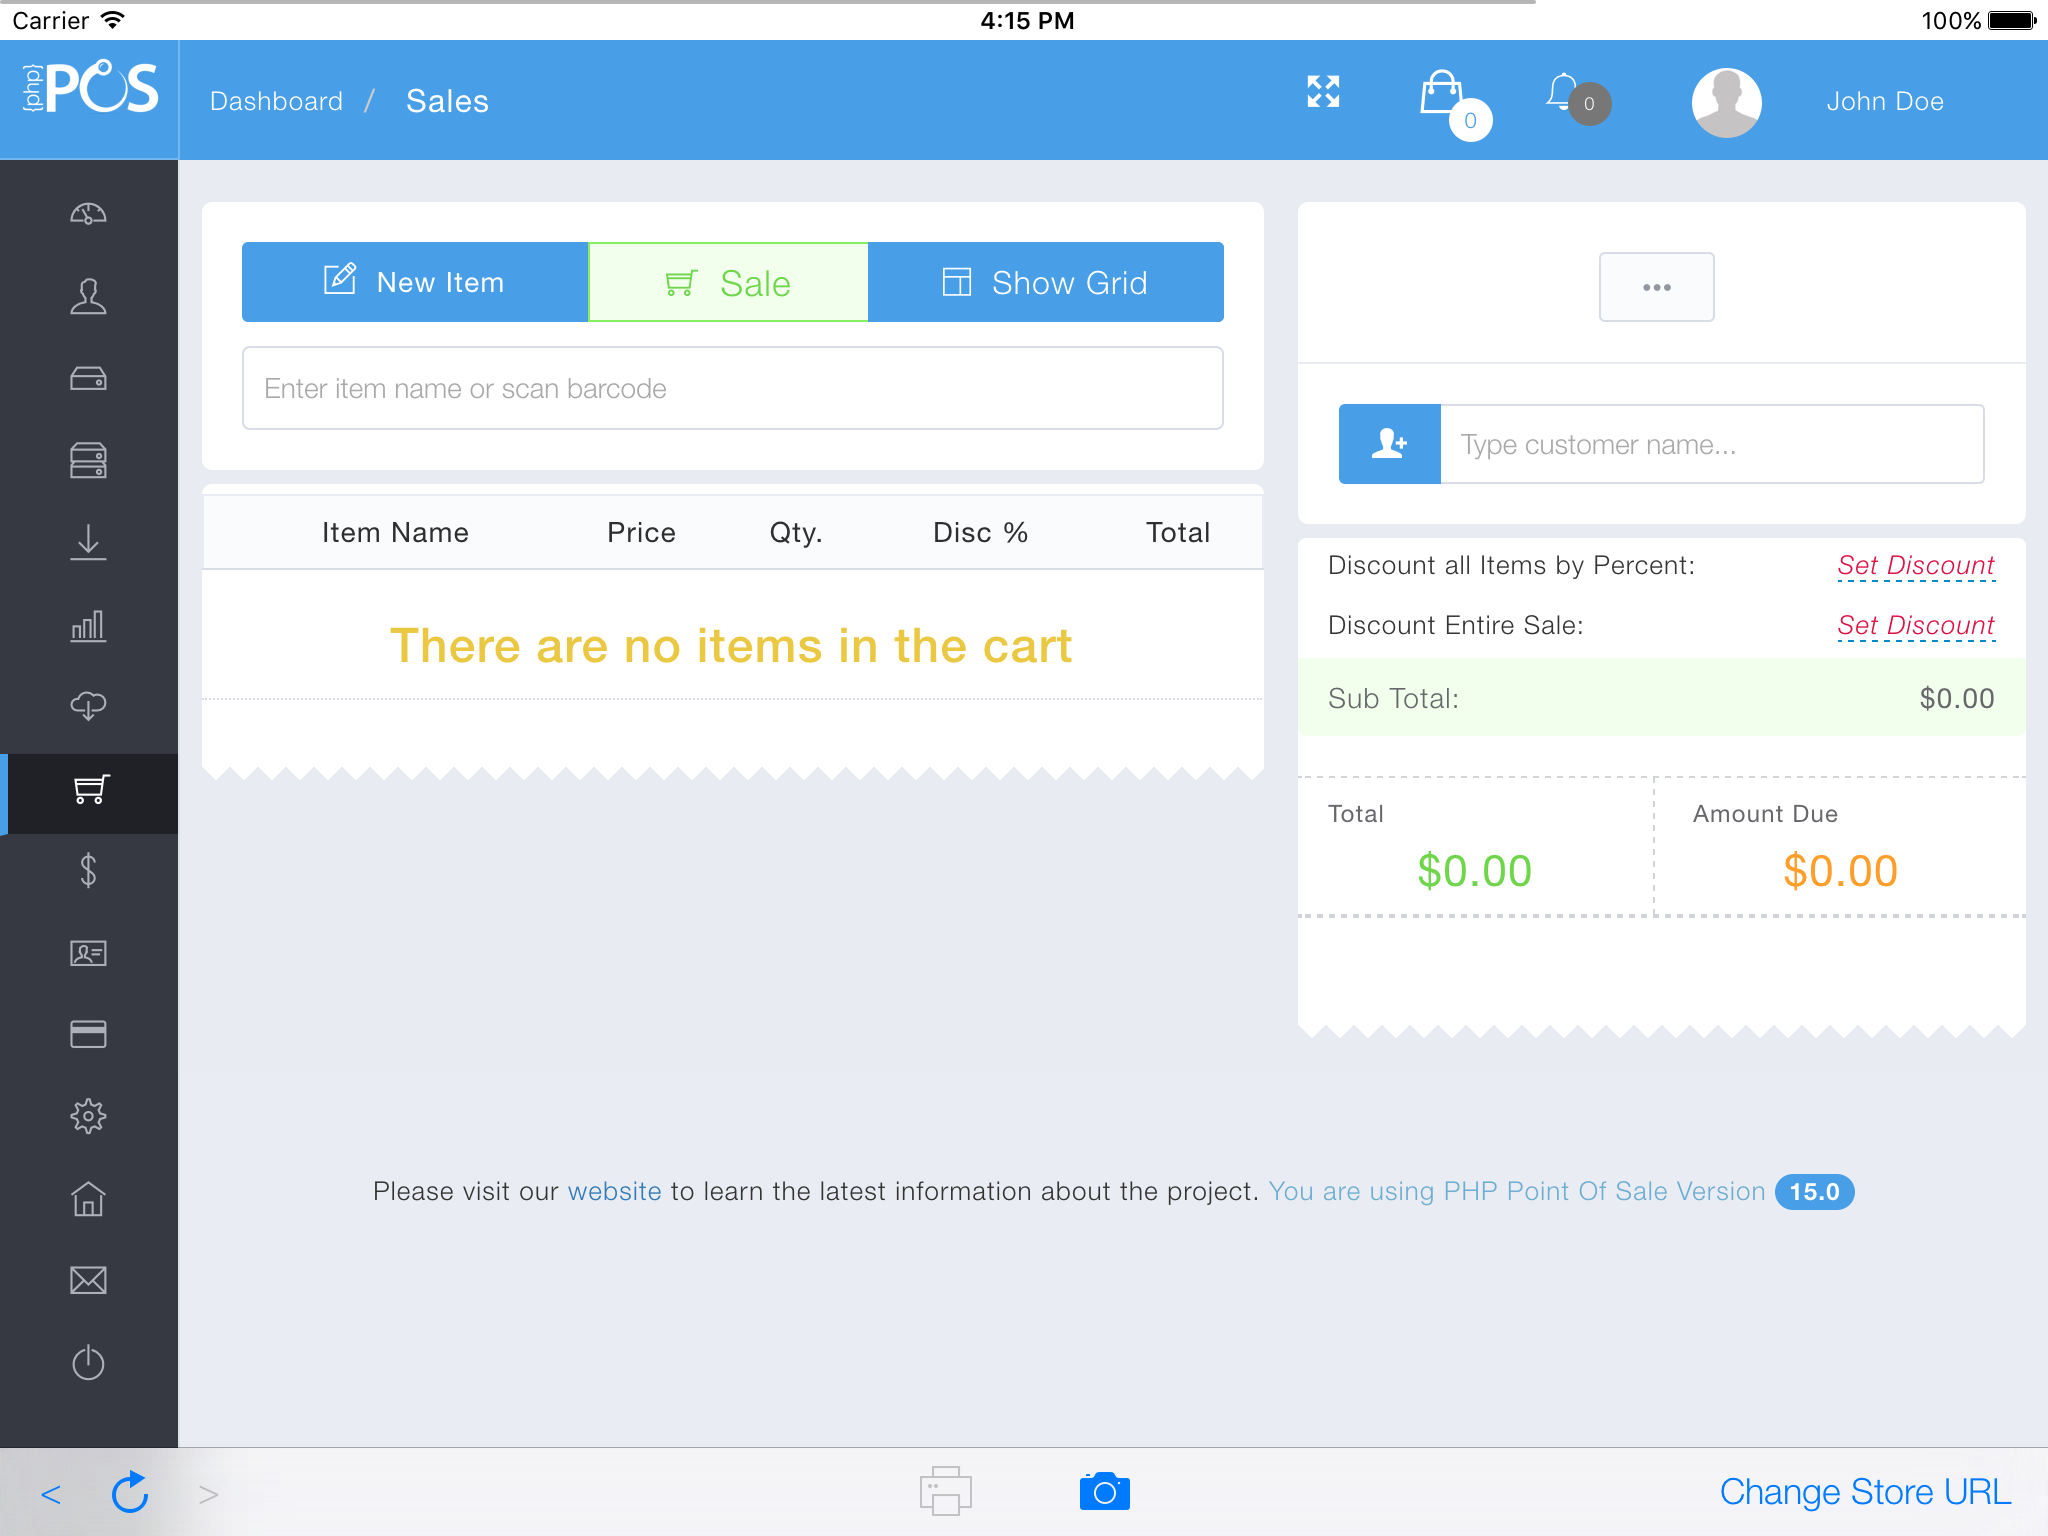 PHP Point of Sale Software - Sale view 2